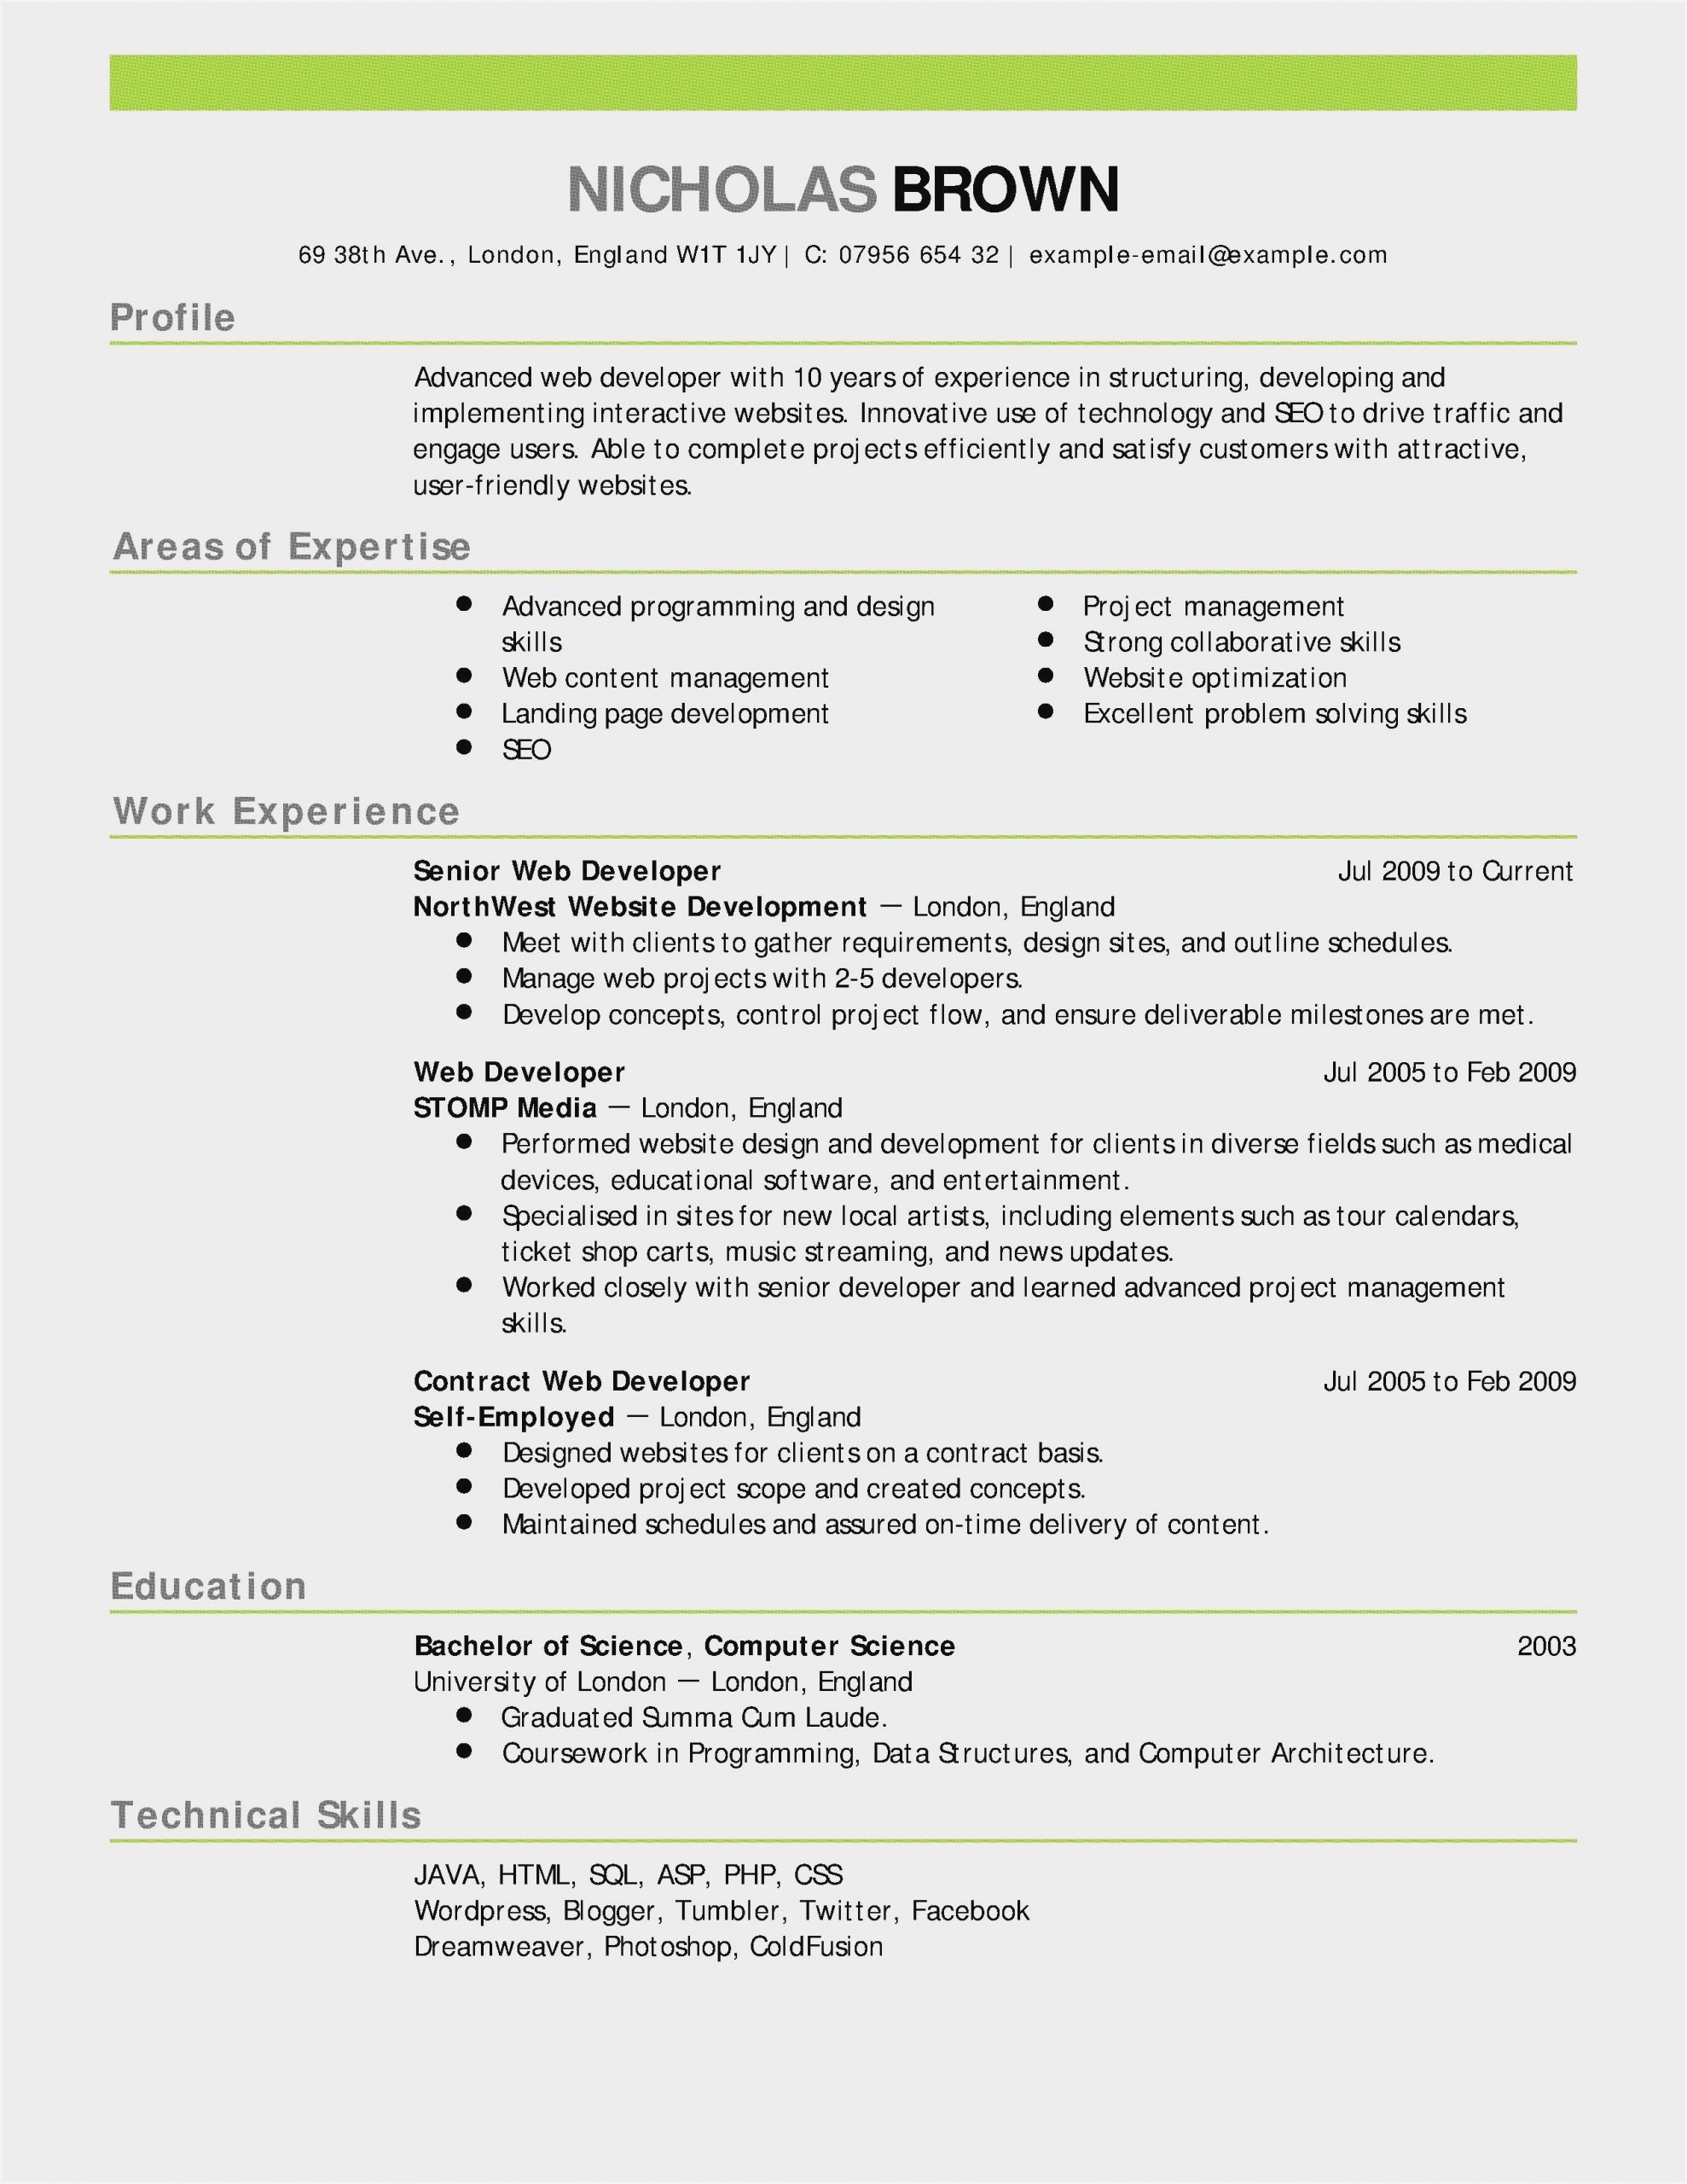 resume templates for college admission sample academic scaled electrical engineer Resume Academic Resume For College Admission